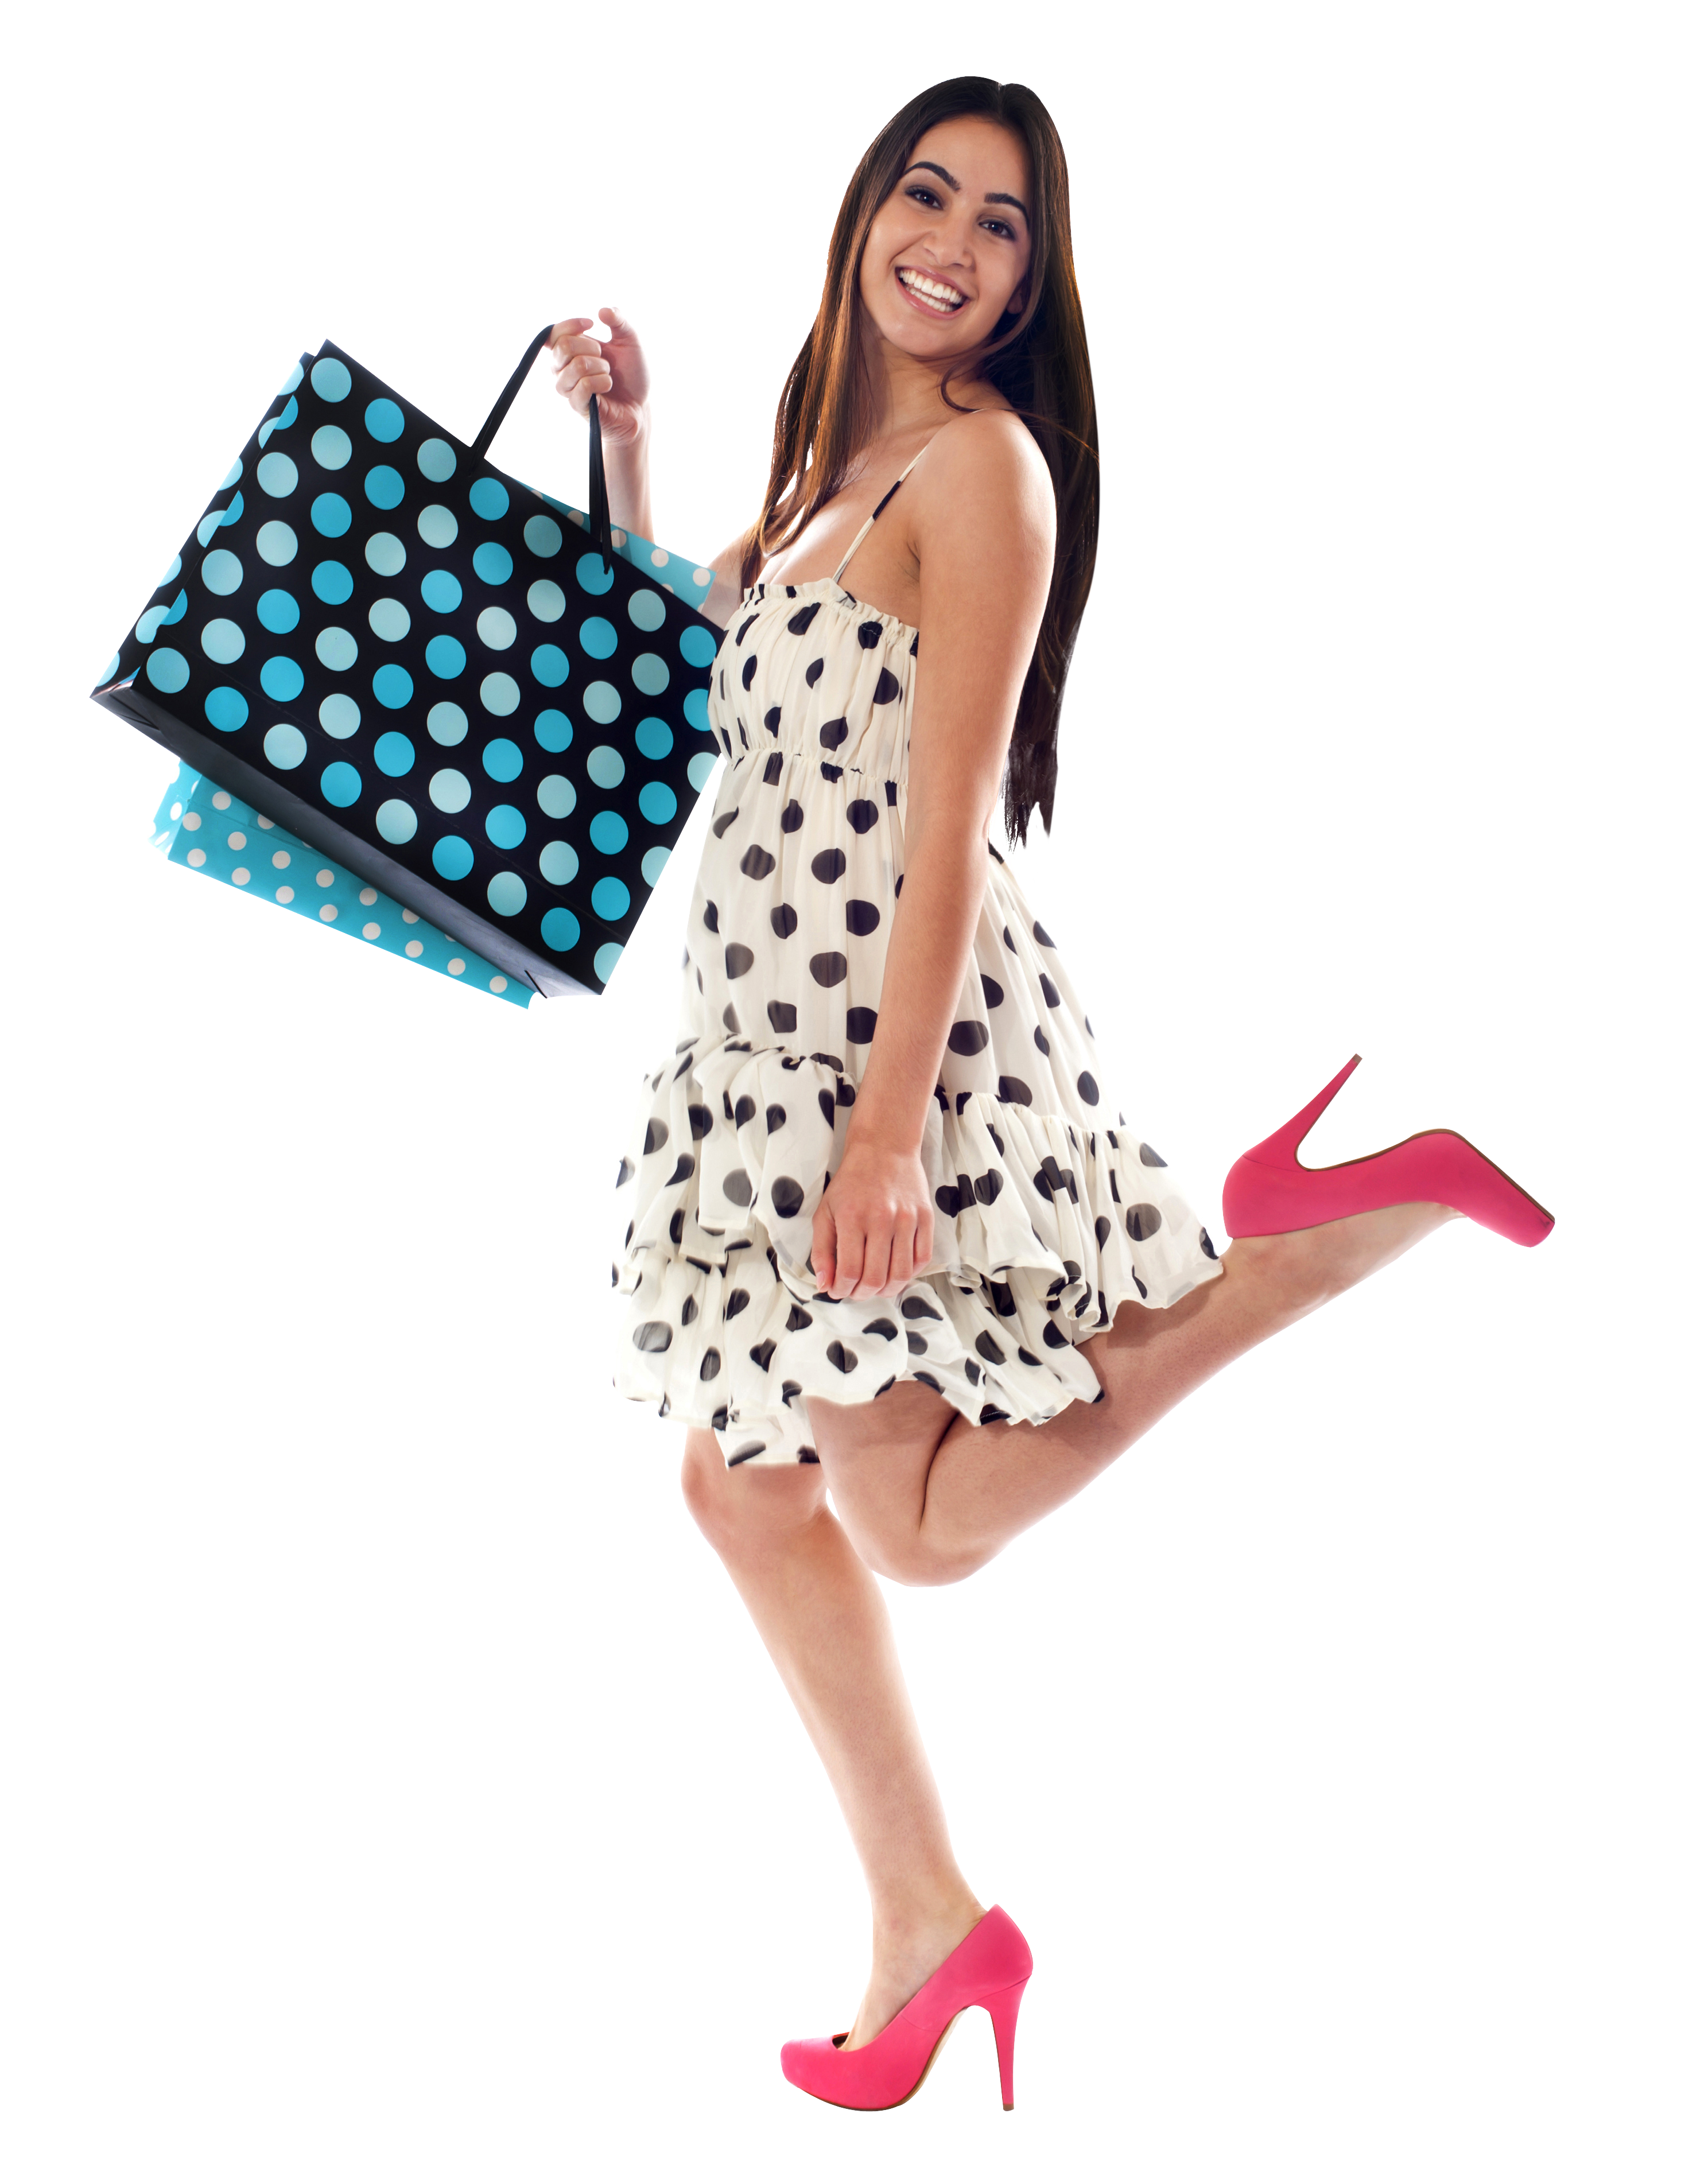 Free png images for commercial use. Women shopping play